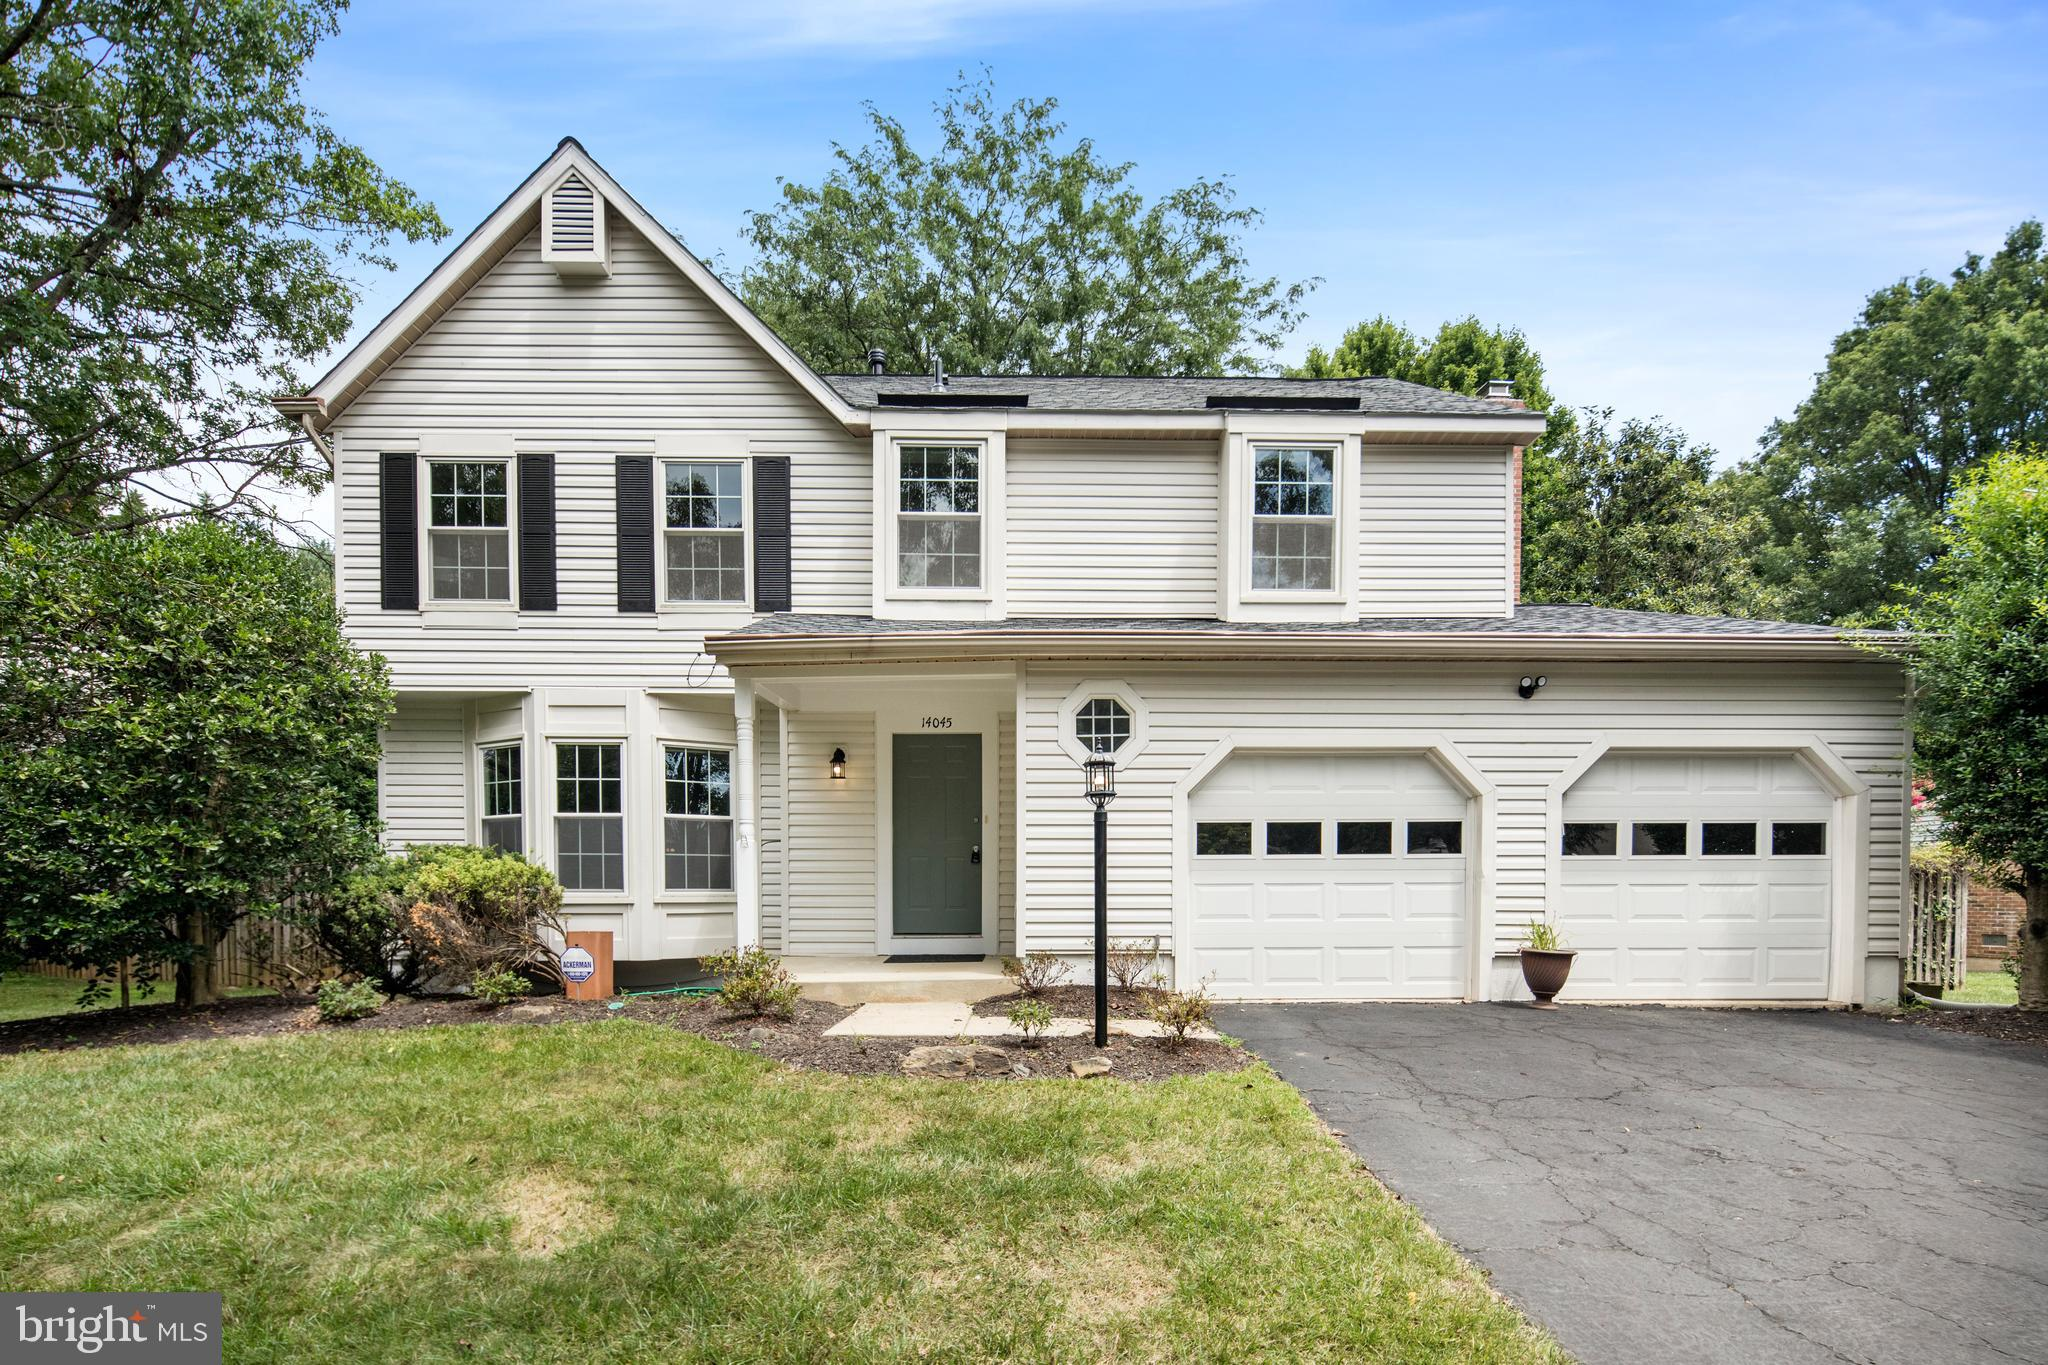 This is a great price for a 4 bedroom, 2.5 bath colonial dream home in one of the Metro areas best l